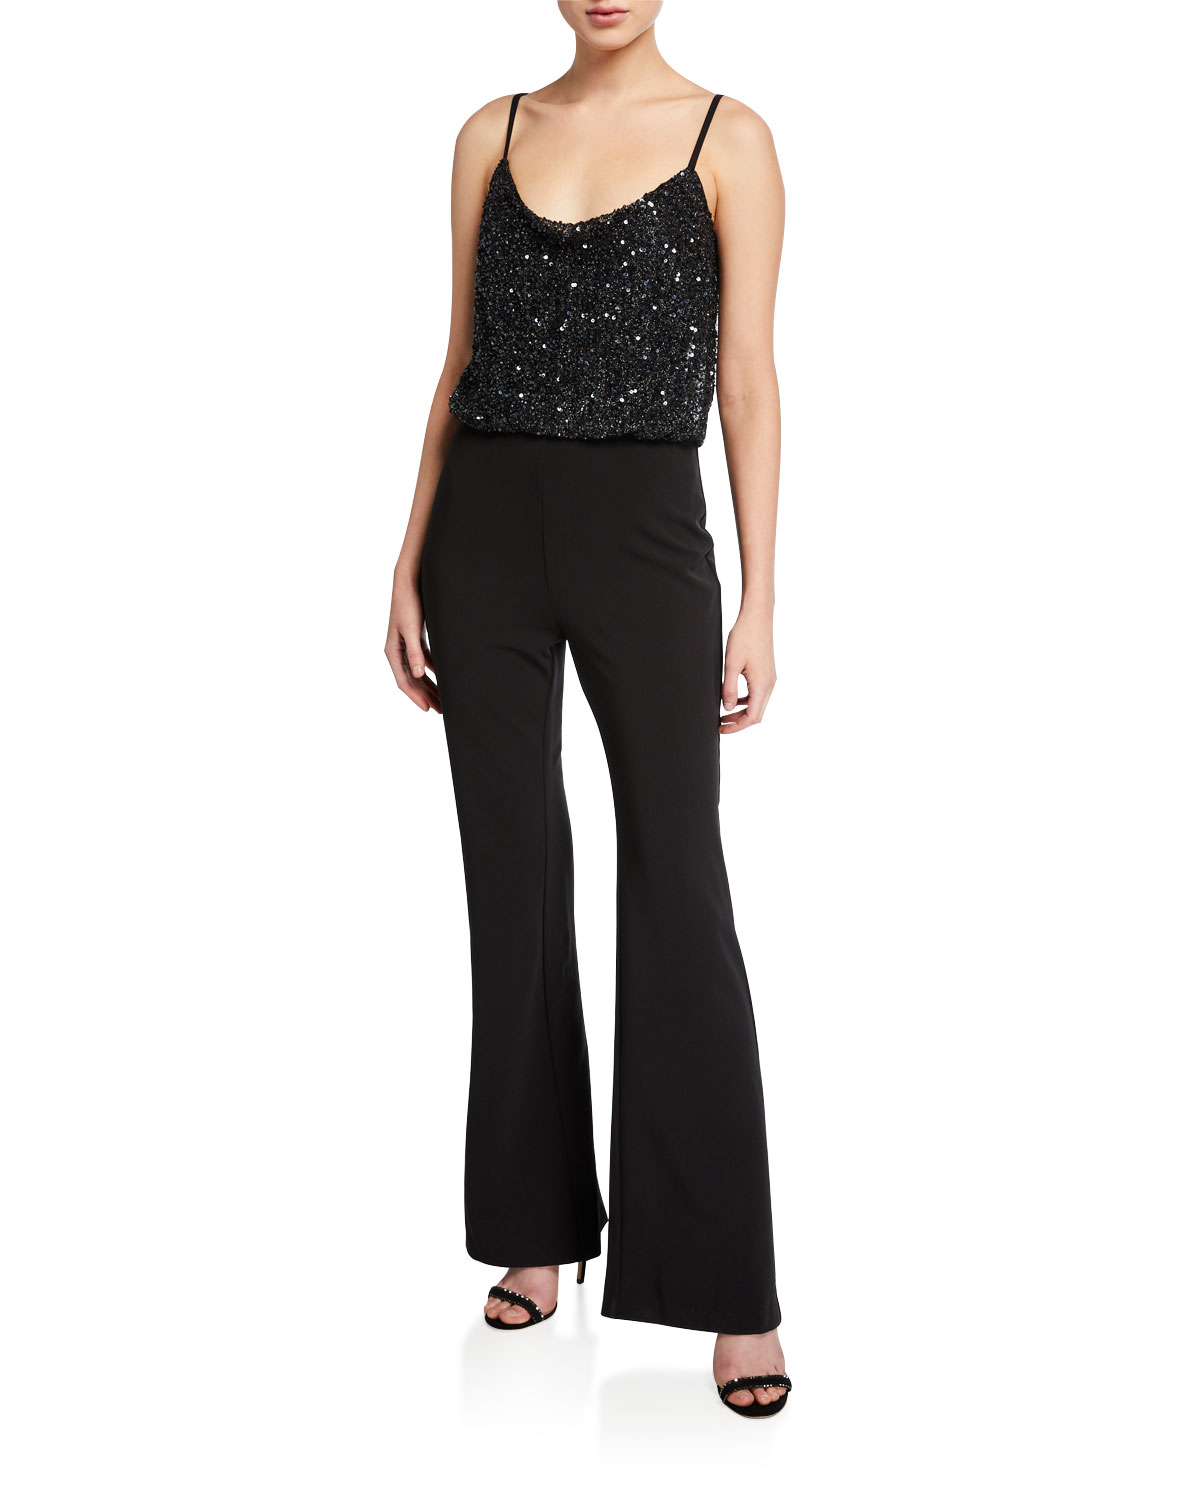 Parker Black Suits PERTH BEADED-BODICE SLEEVELESS STRETCH CREPE FLARE-LEG JUMPSUIT